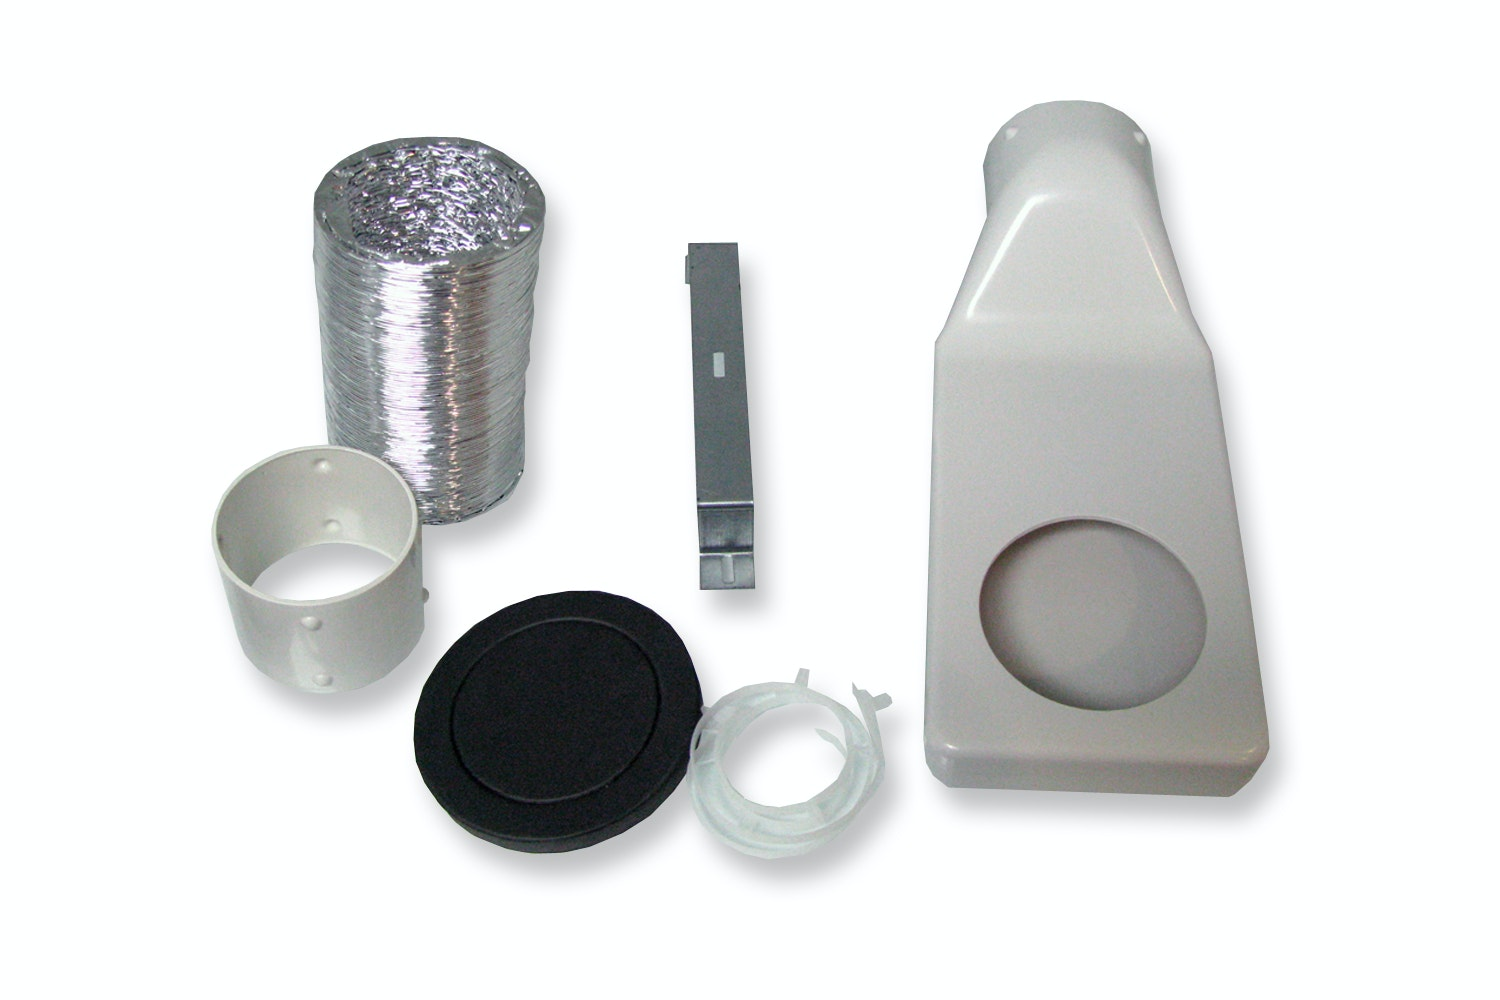 Clothes dryer vent kit nz